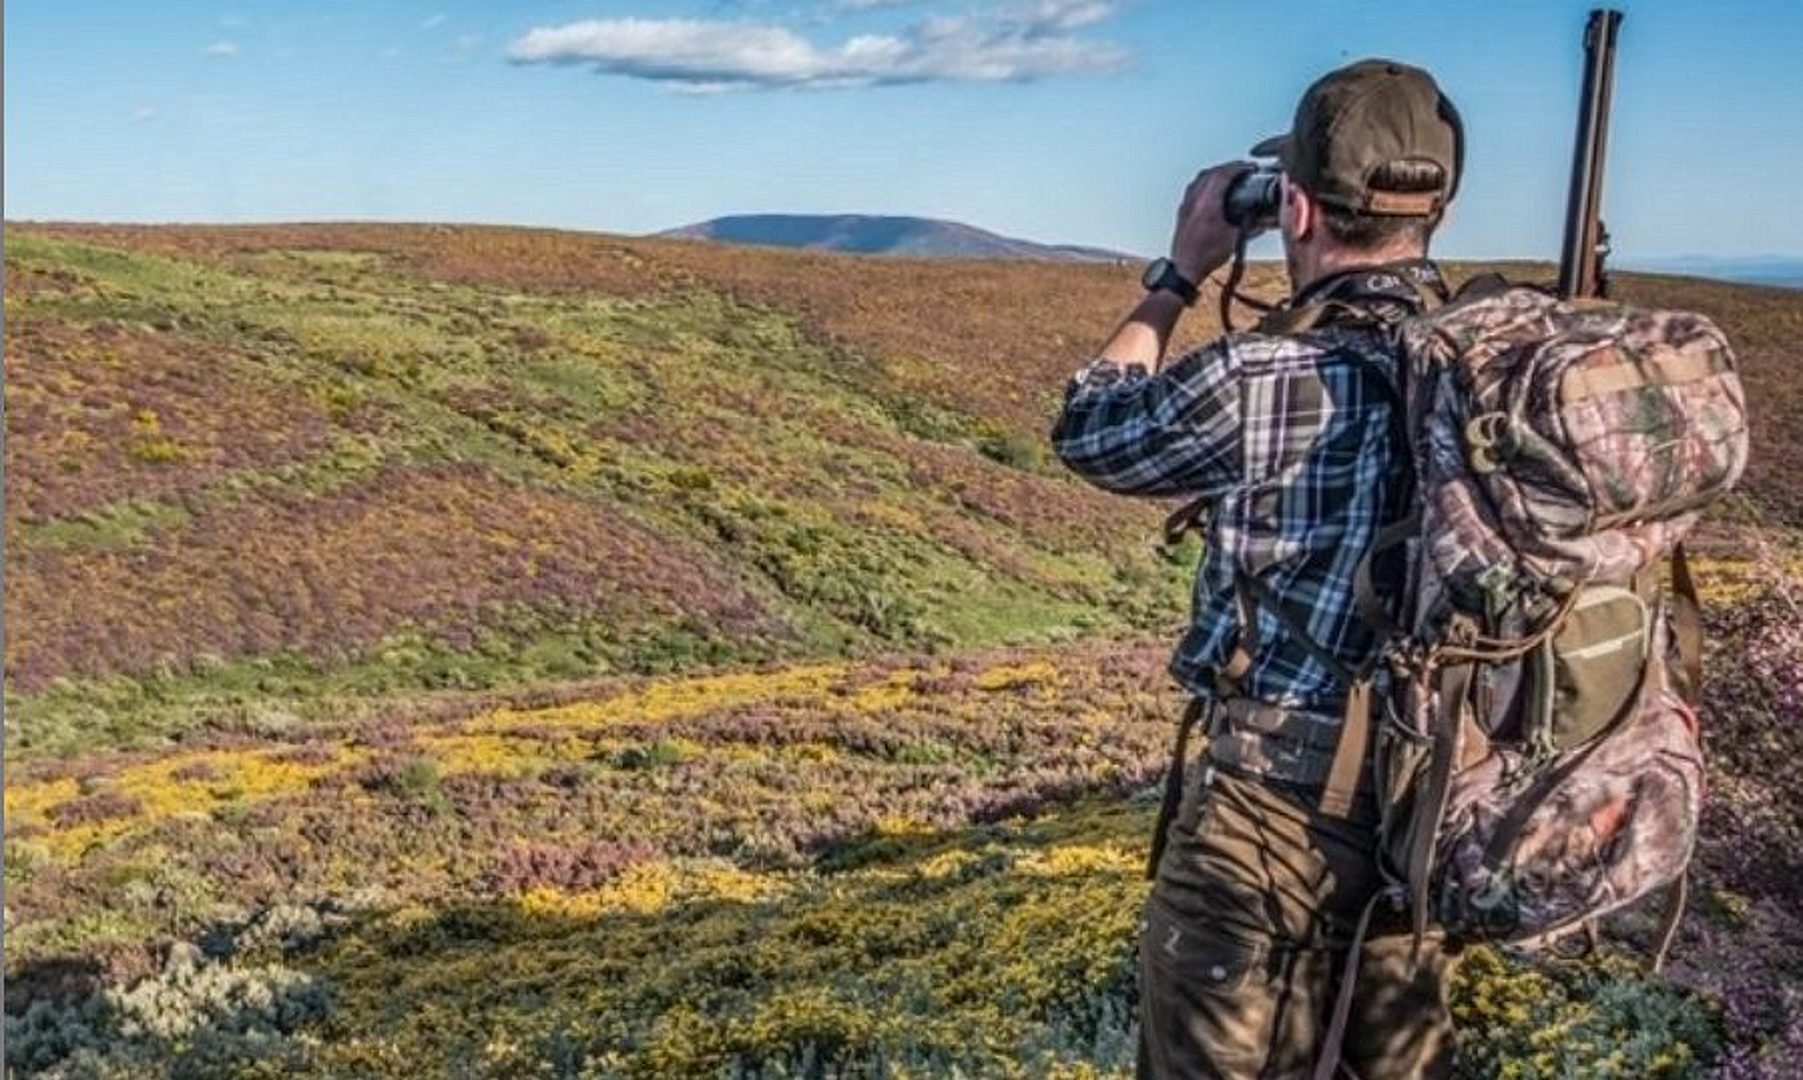 A hunter looks through binoculars 6 Awesome DayPacks for Hunting to Carry Everything You Need!